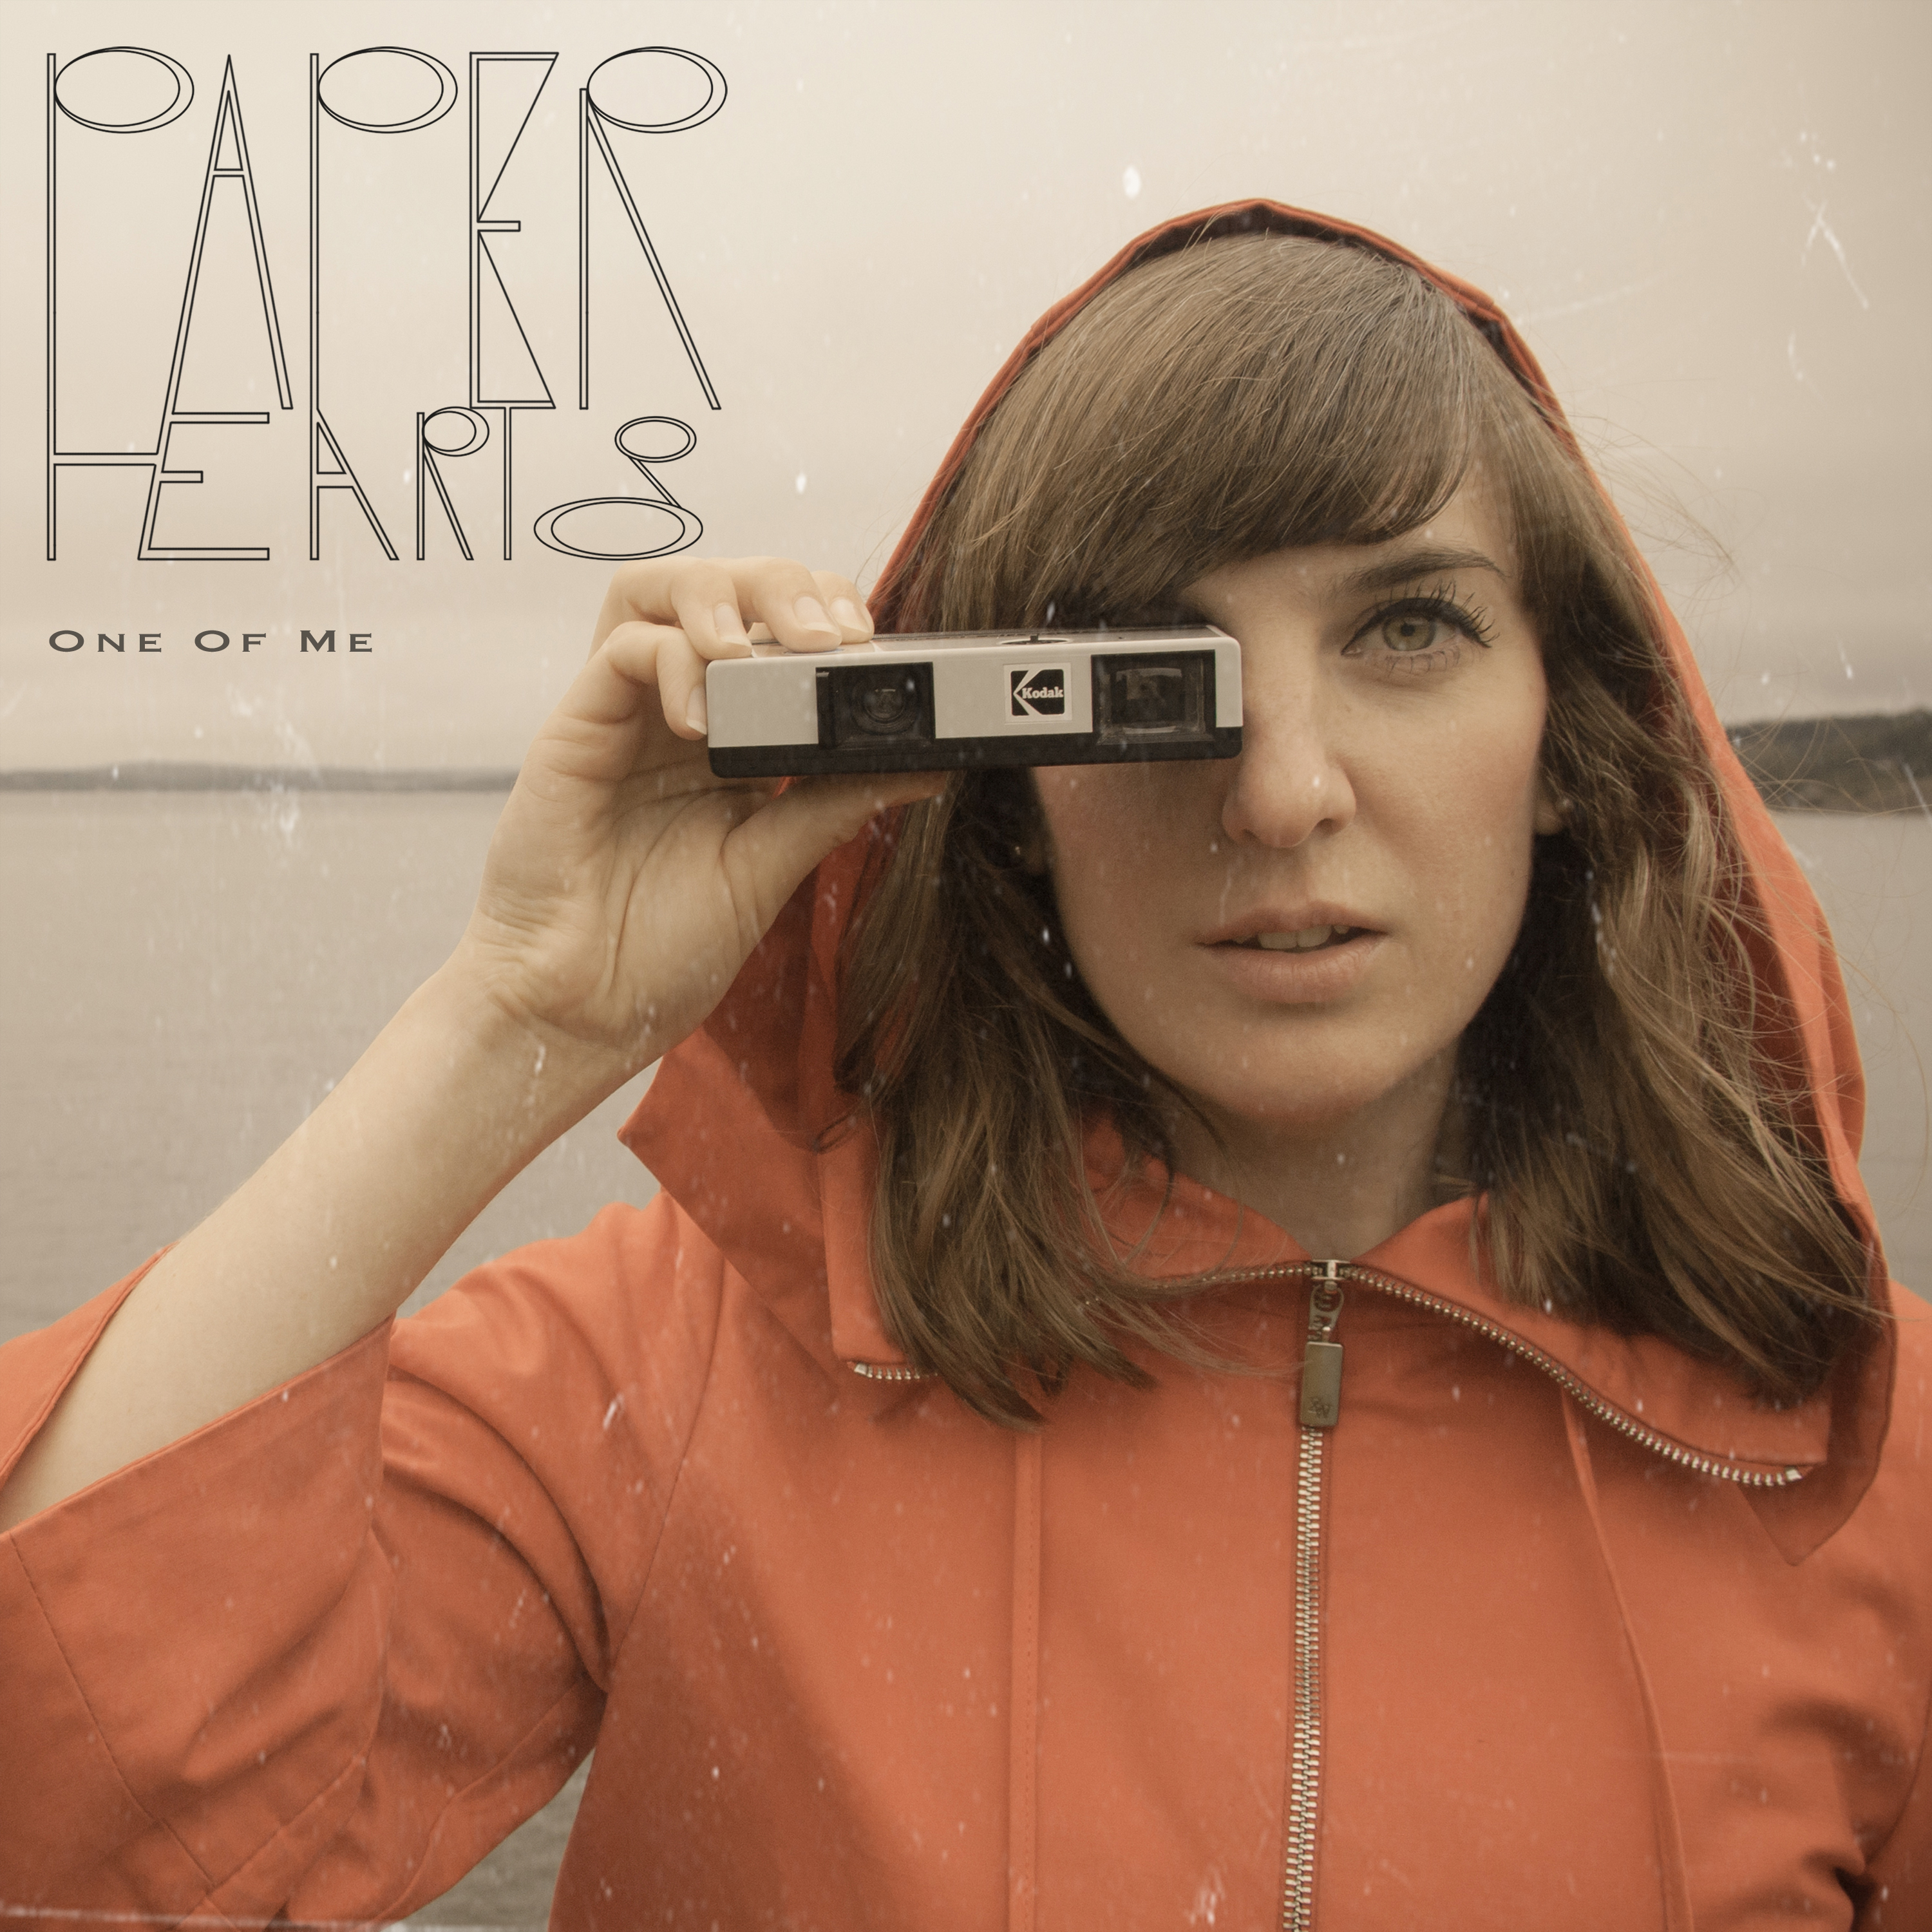 Paper Hearts On Of Me single